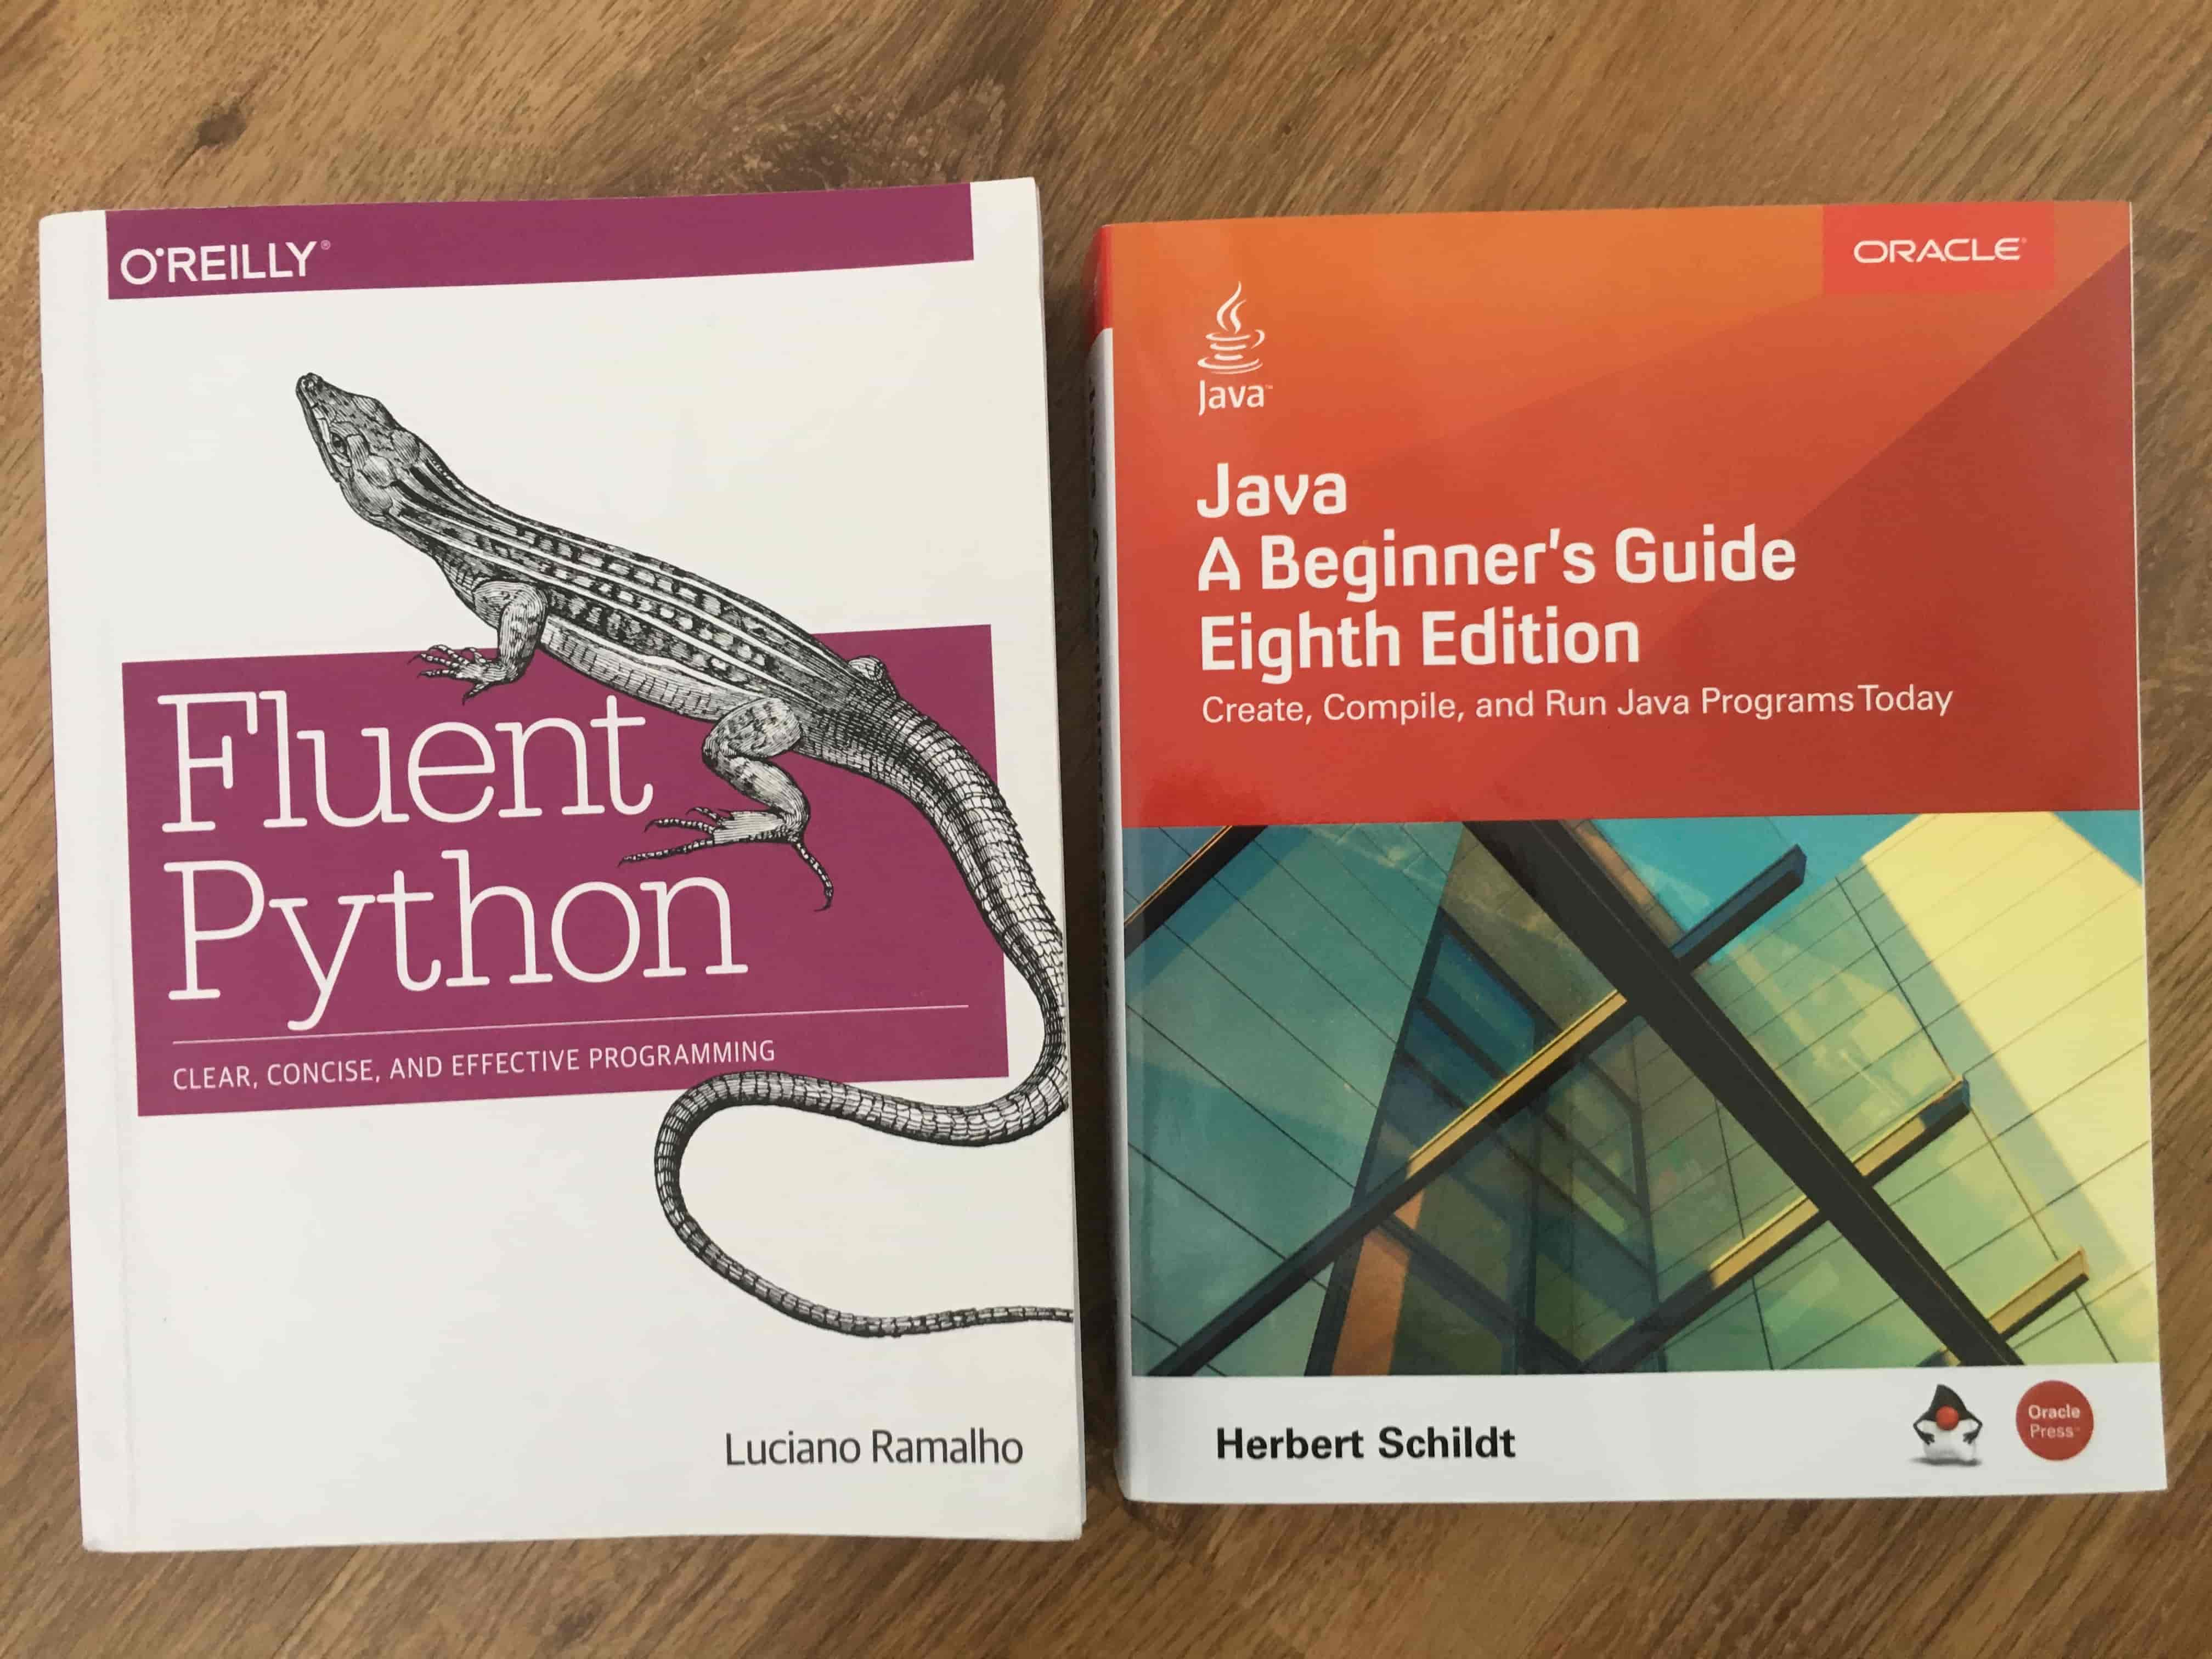 java book and python book